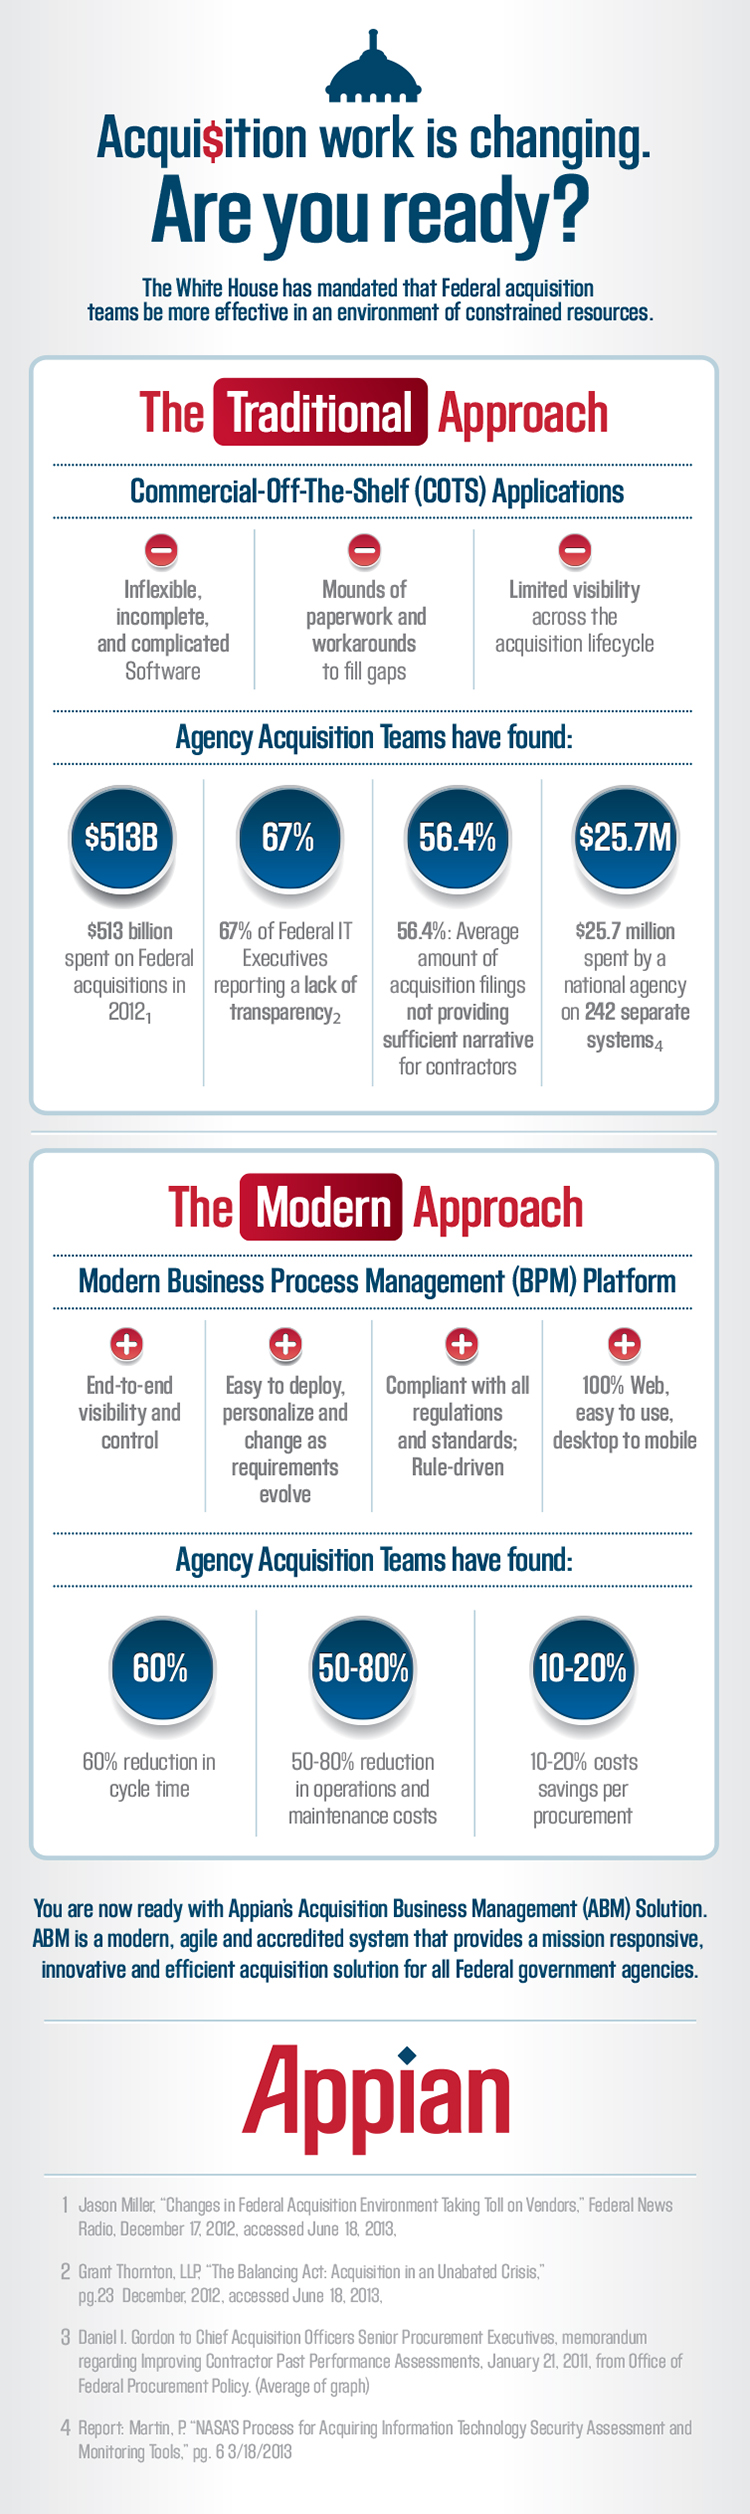 Acquisition Work Is Changing - Are You Ready?